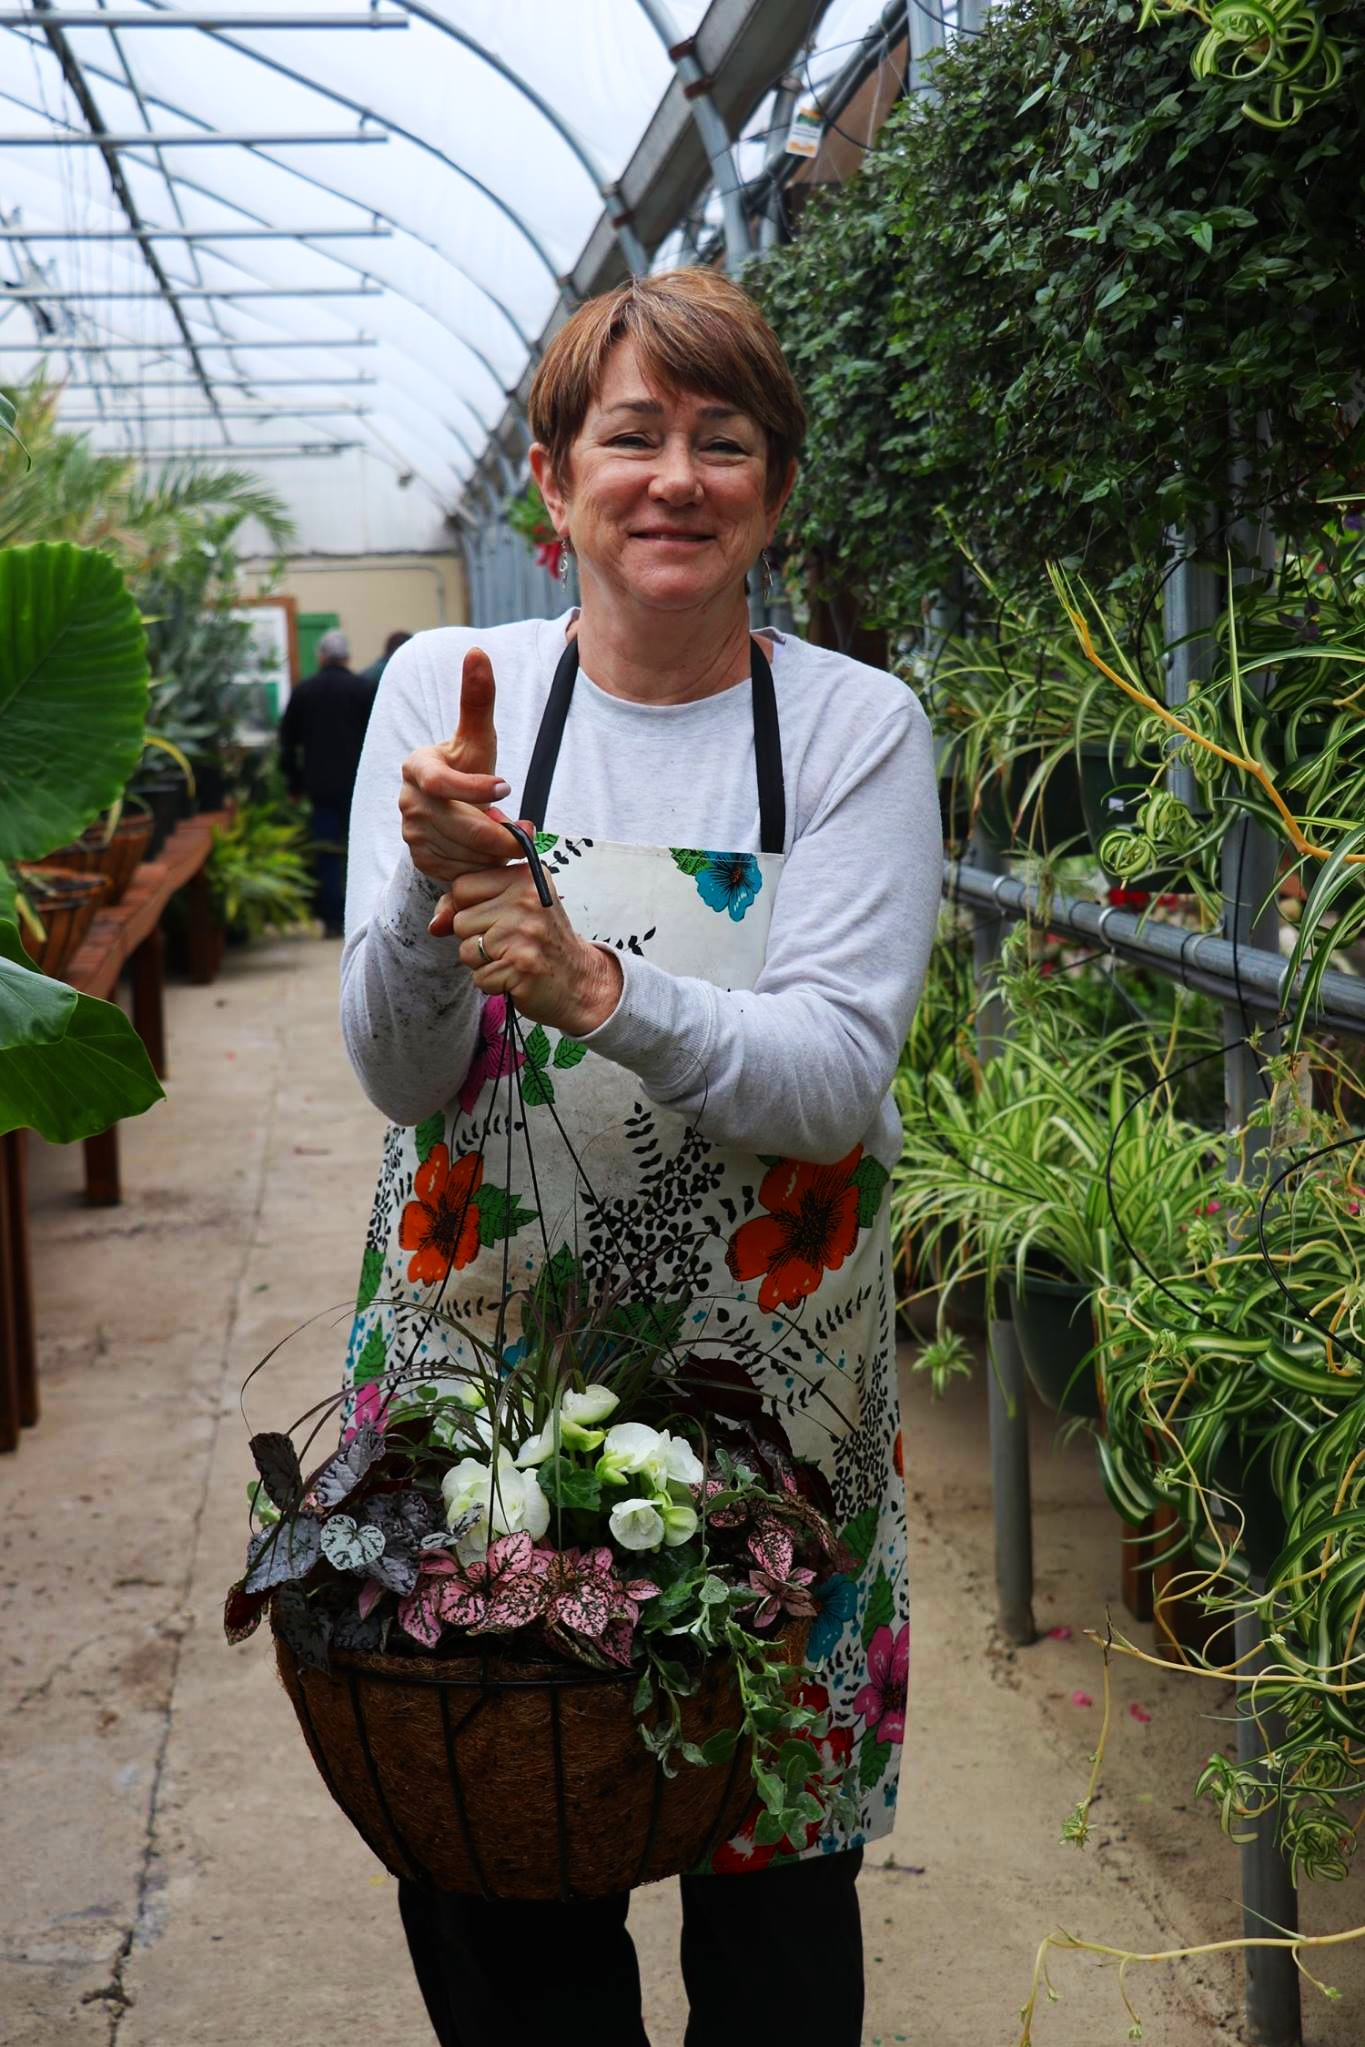 Mary - Known for her famous hanging baskets, Mary uses her passion for gardening and experience in garden and landscape design to create gorgeous arrangements. With her strong background in design, she does a wonderful job of making containers that are just drop dead gorgeous!